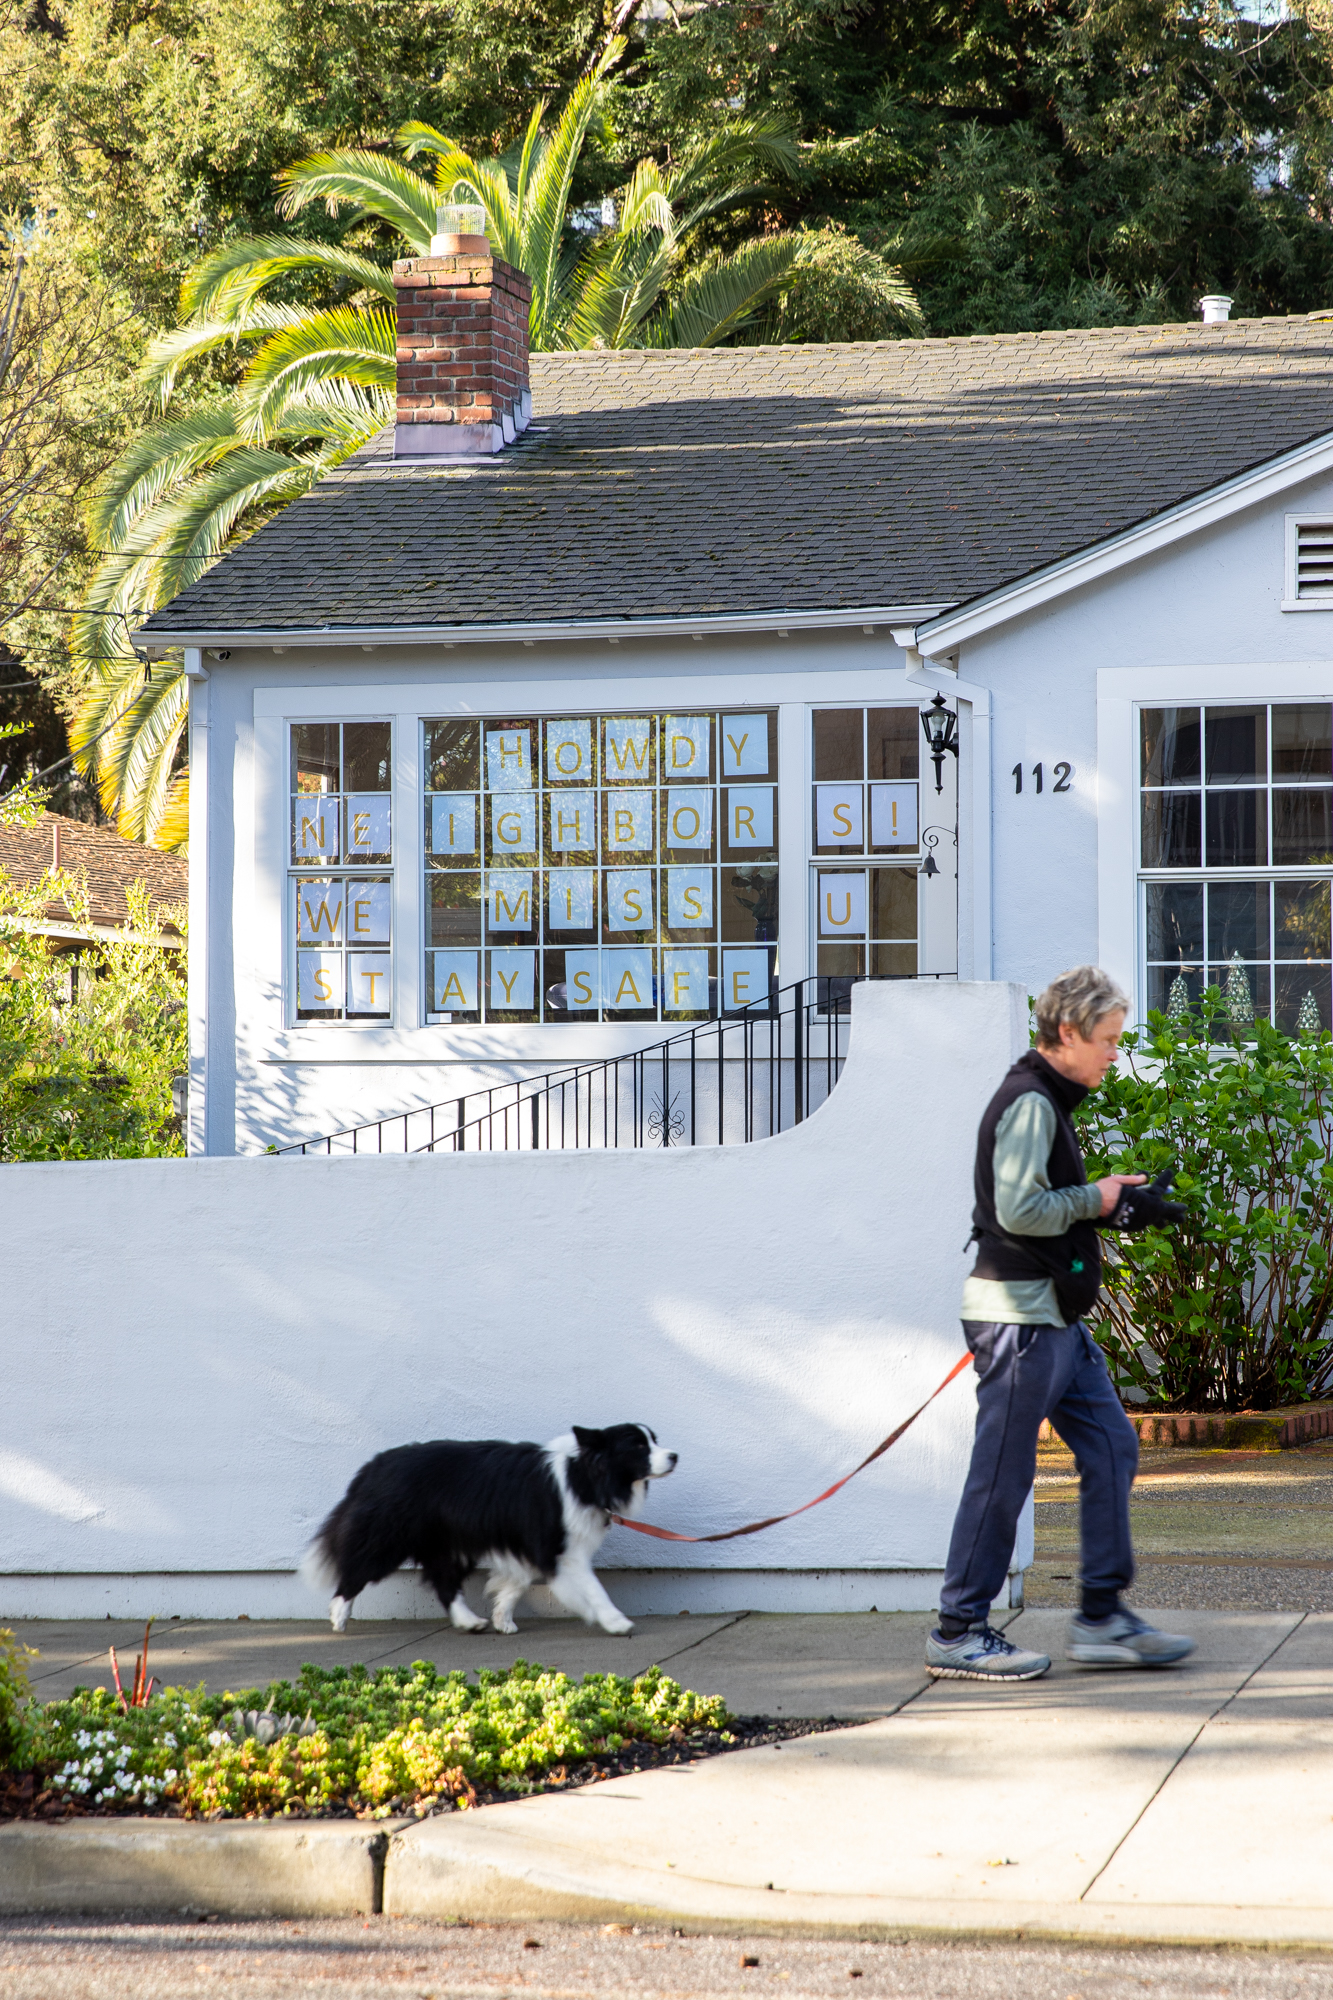 """A pedestrian and dog walk in front of house with the message """"HOWDY NEIGHBORS! WE MISS U STAY SAFE"""" in downtown Palo Alto on March 19. Photo by Magali Gauthier."""